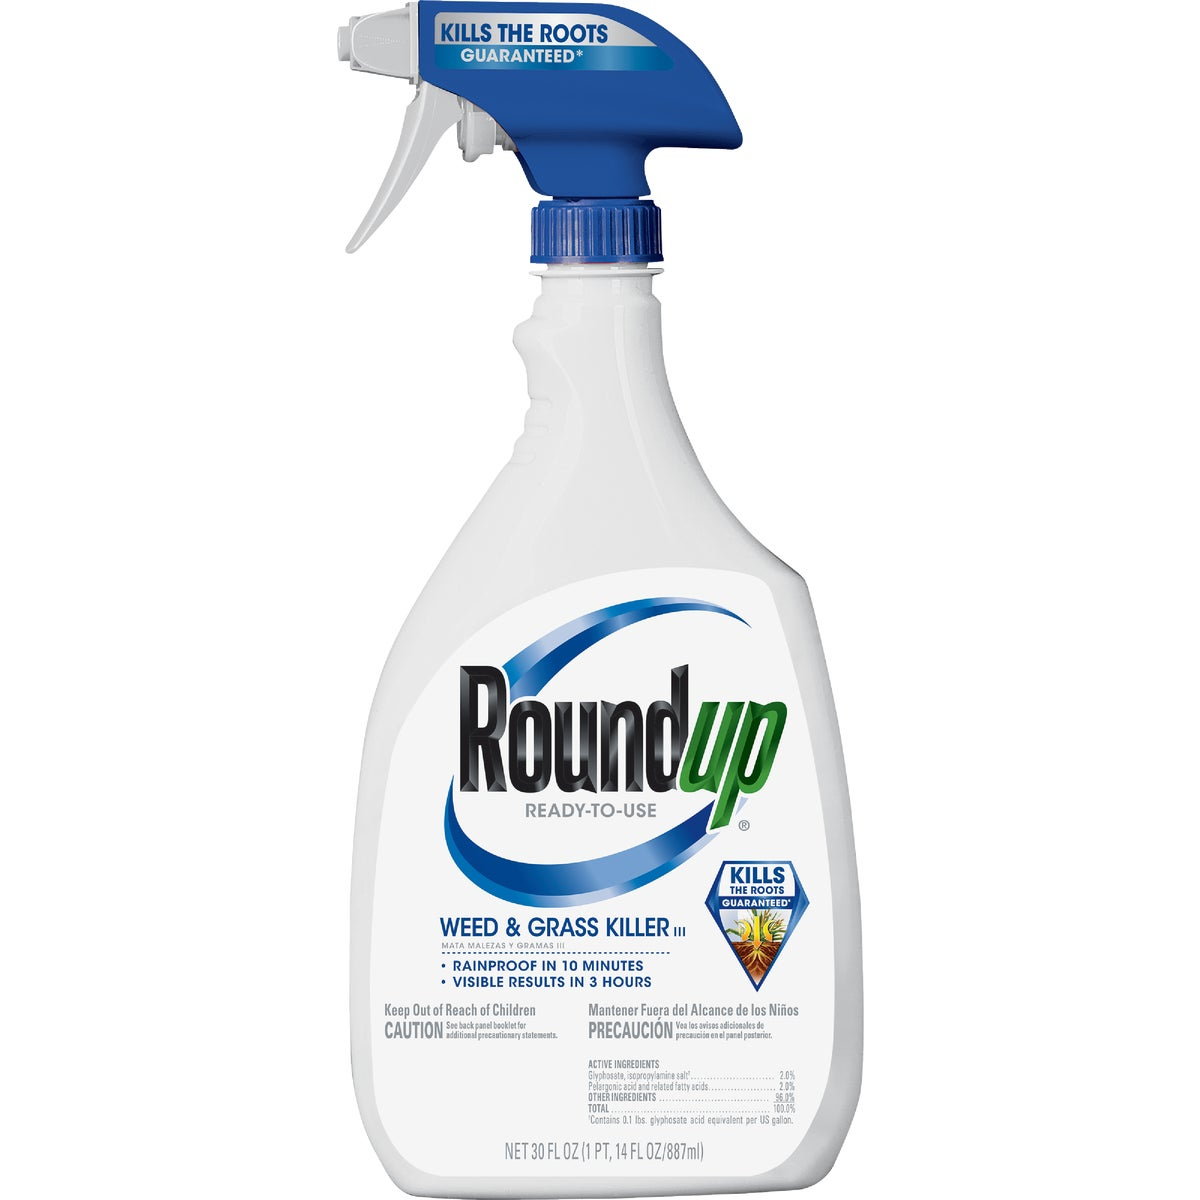 30OZ RTU ROUNDUP - 5003410 by Scotts Company